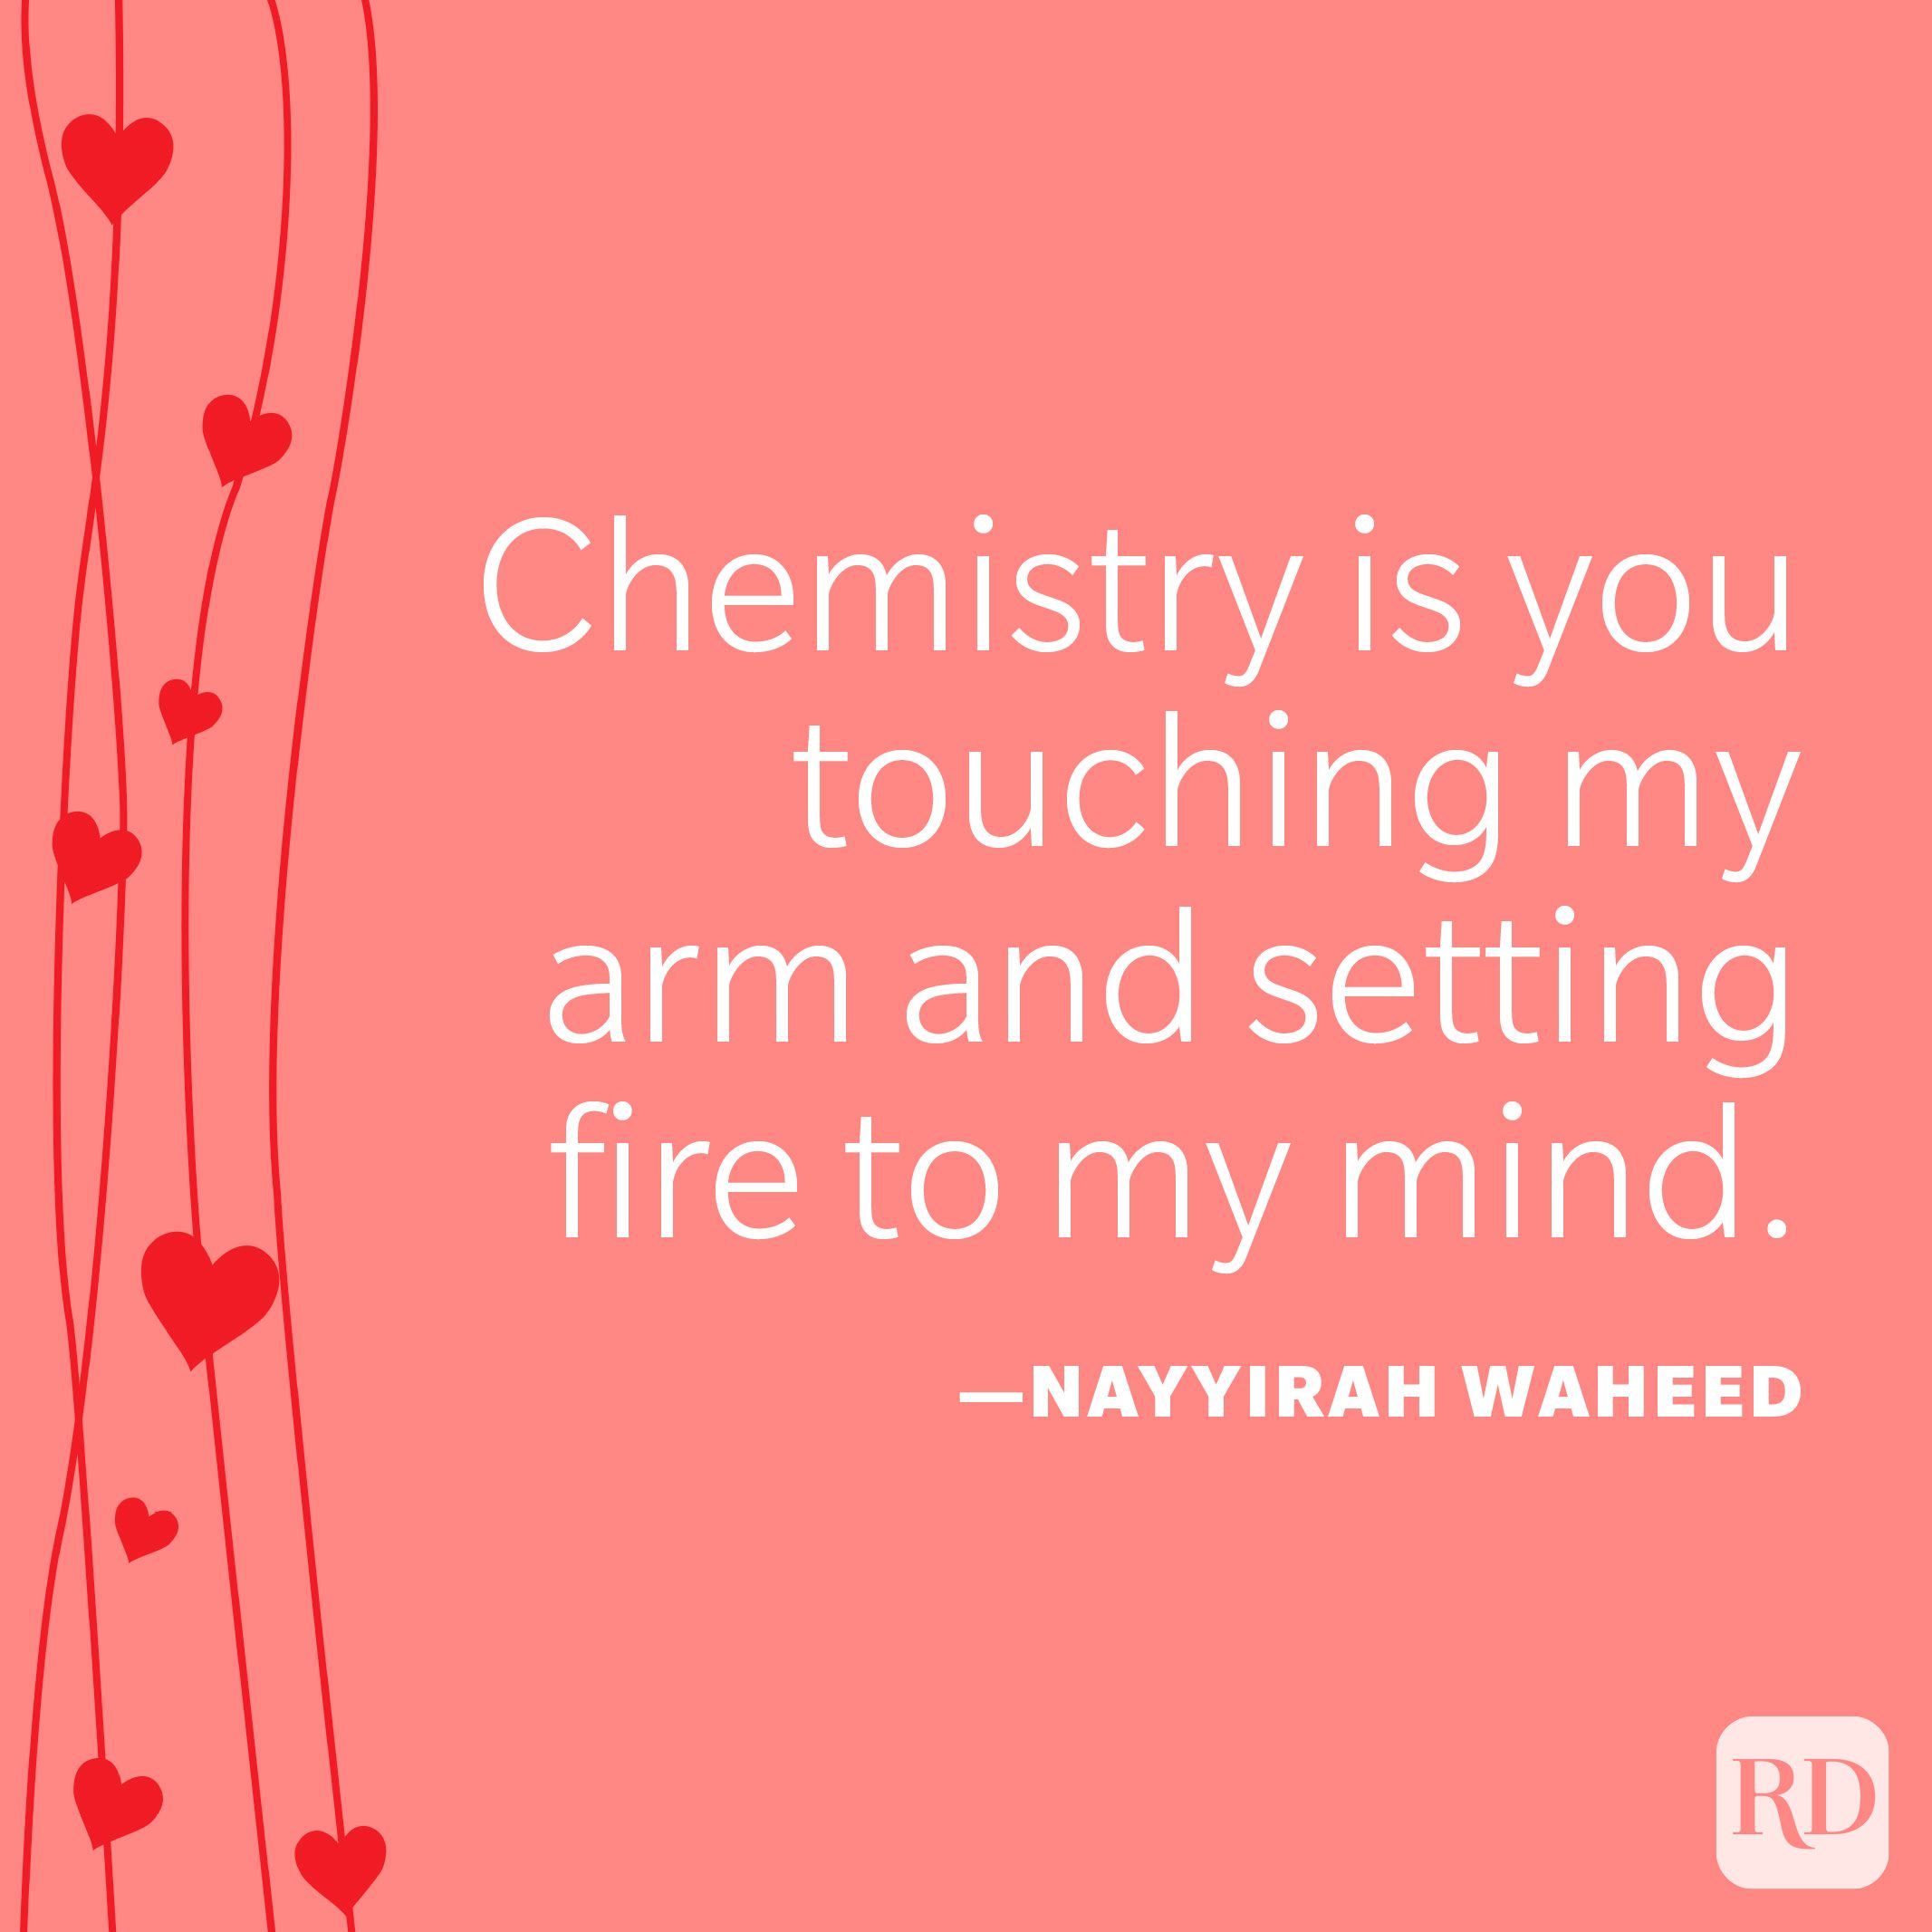 """""""Chemistry is you touching my arm and setting fire to my mind."""" —Nayyirah Waheed"""